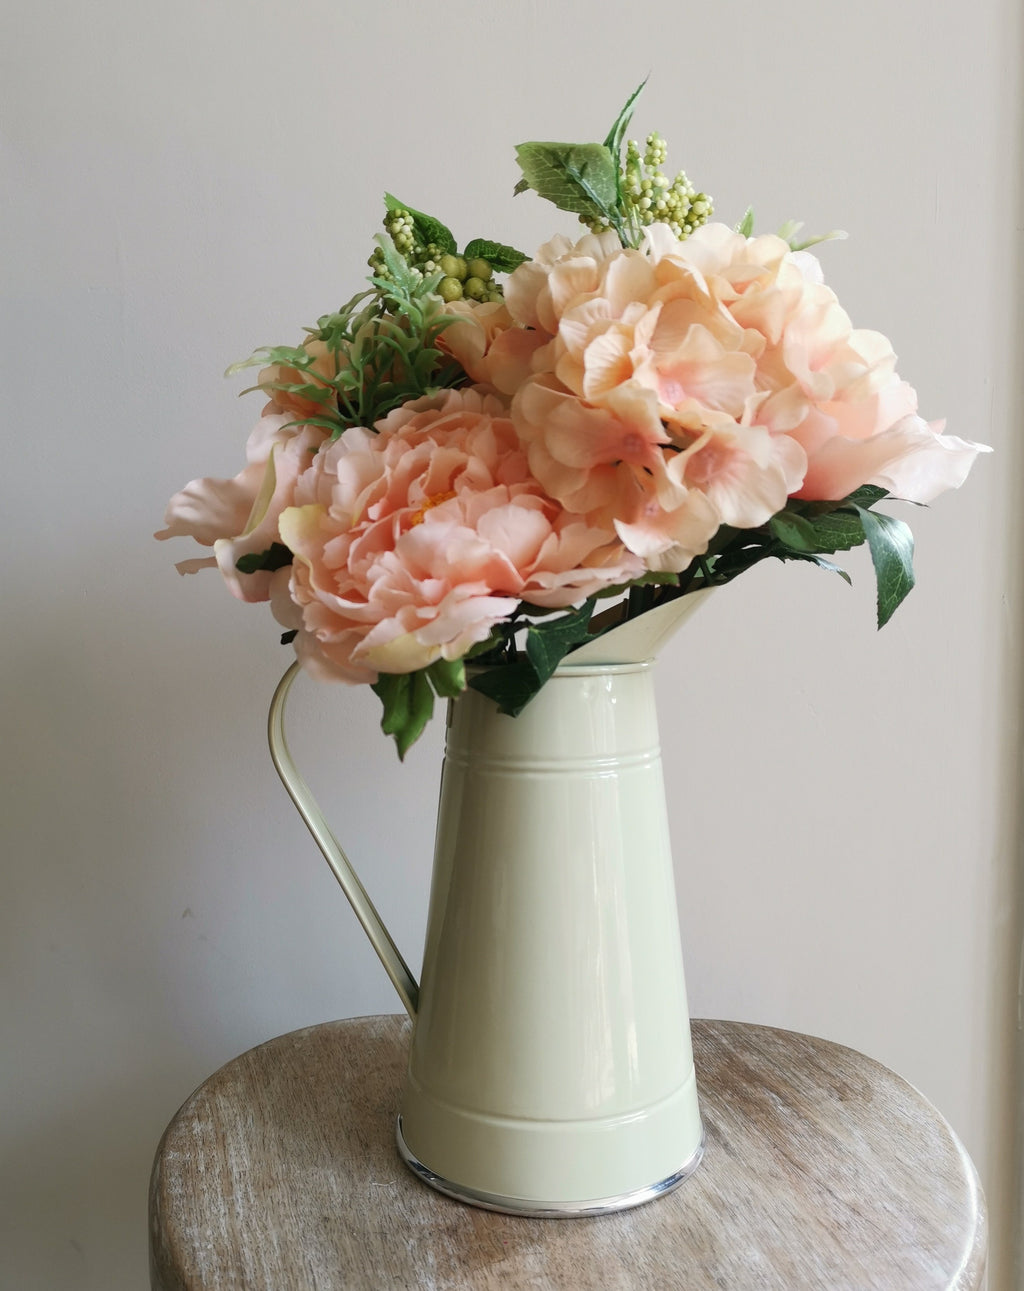 Rose and Peony Artificial Flowers - TBI